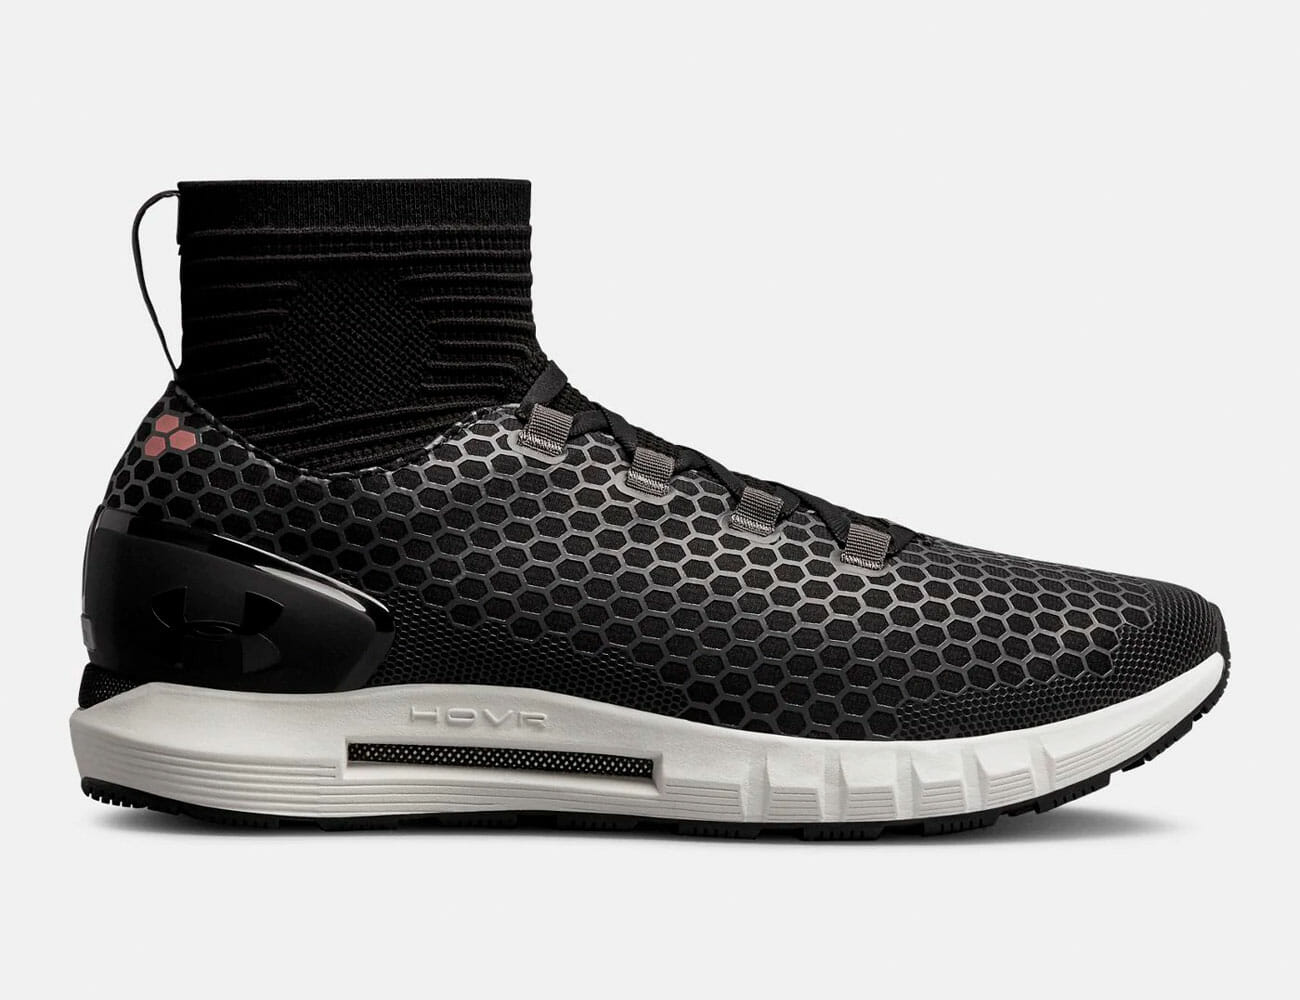 reputable site 4e5a2 8bf12 Under Armour Hovr CGR Mid Connected  The Michelin rubber outsole on these  Cold Gear Reactor sneakers from Under Armour is the same as the rubber  found in ...